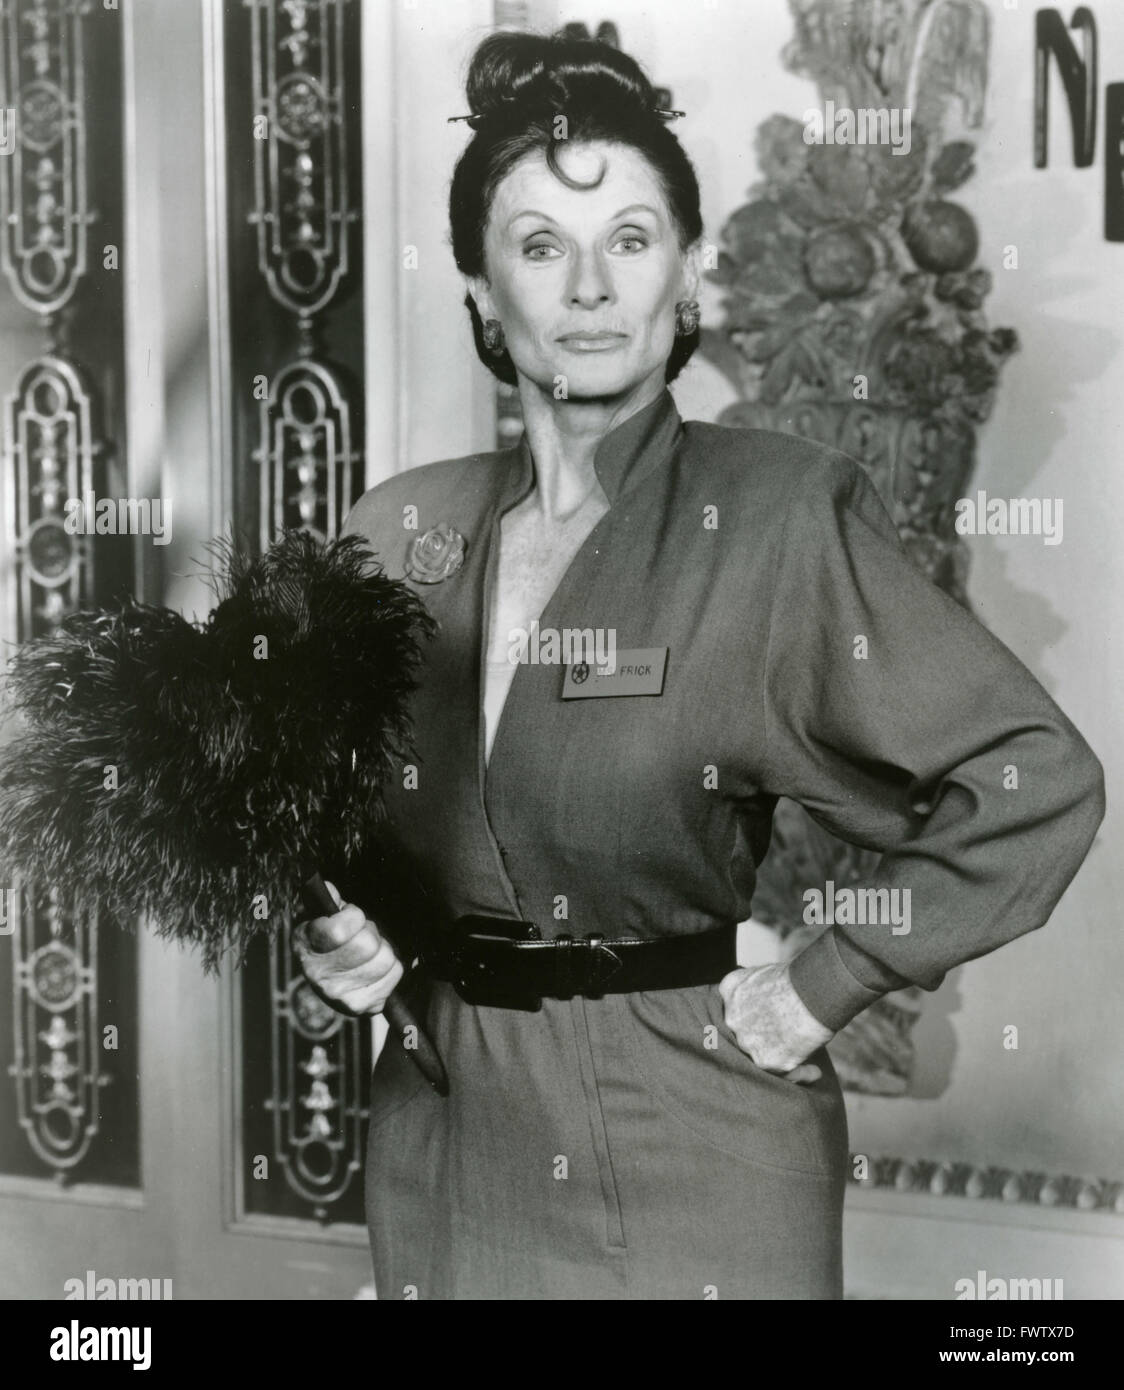 Cloris Leachman comme Mme Frick dans le Nutt House, USA 1989 Photo Stock